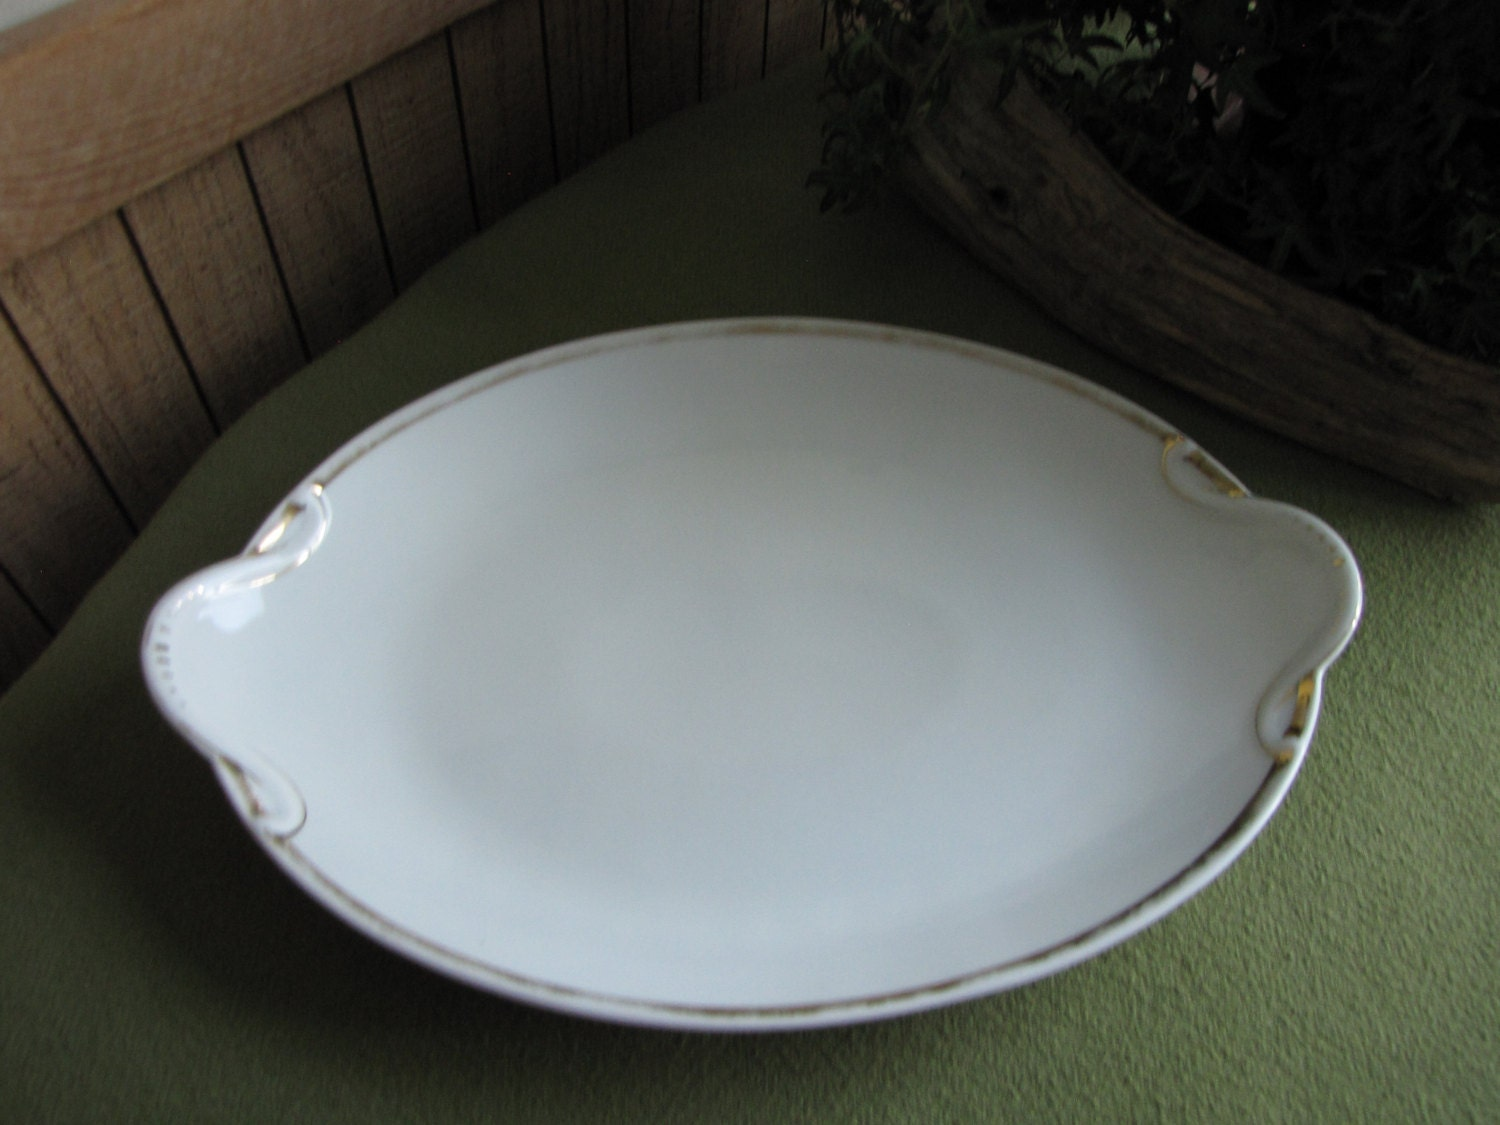 Vintage Serving Trays: What Is It? What Is It Worth?